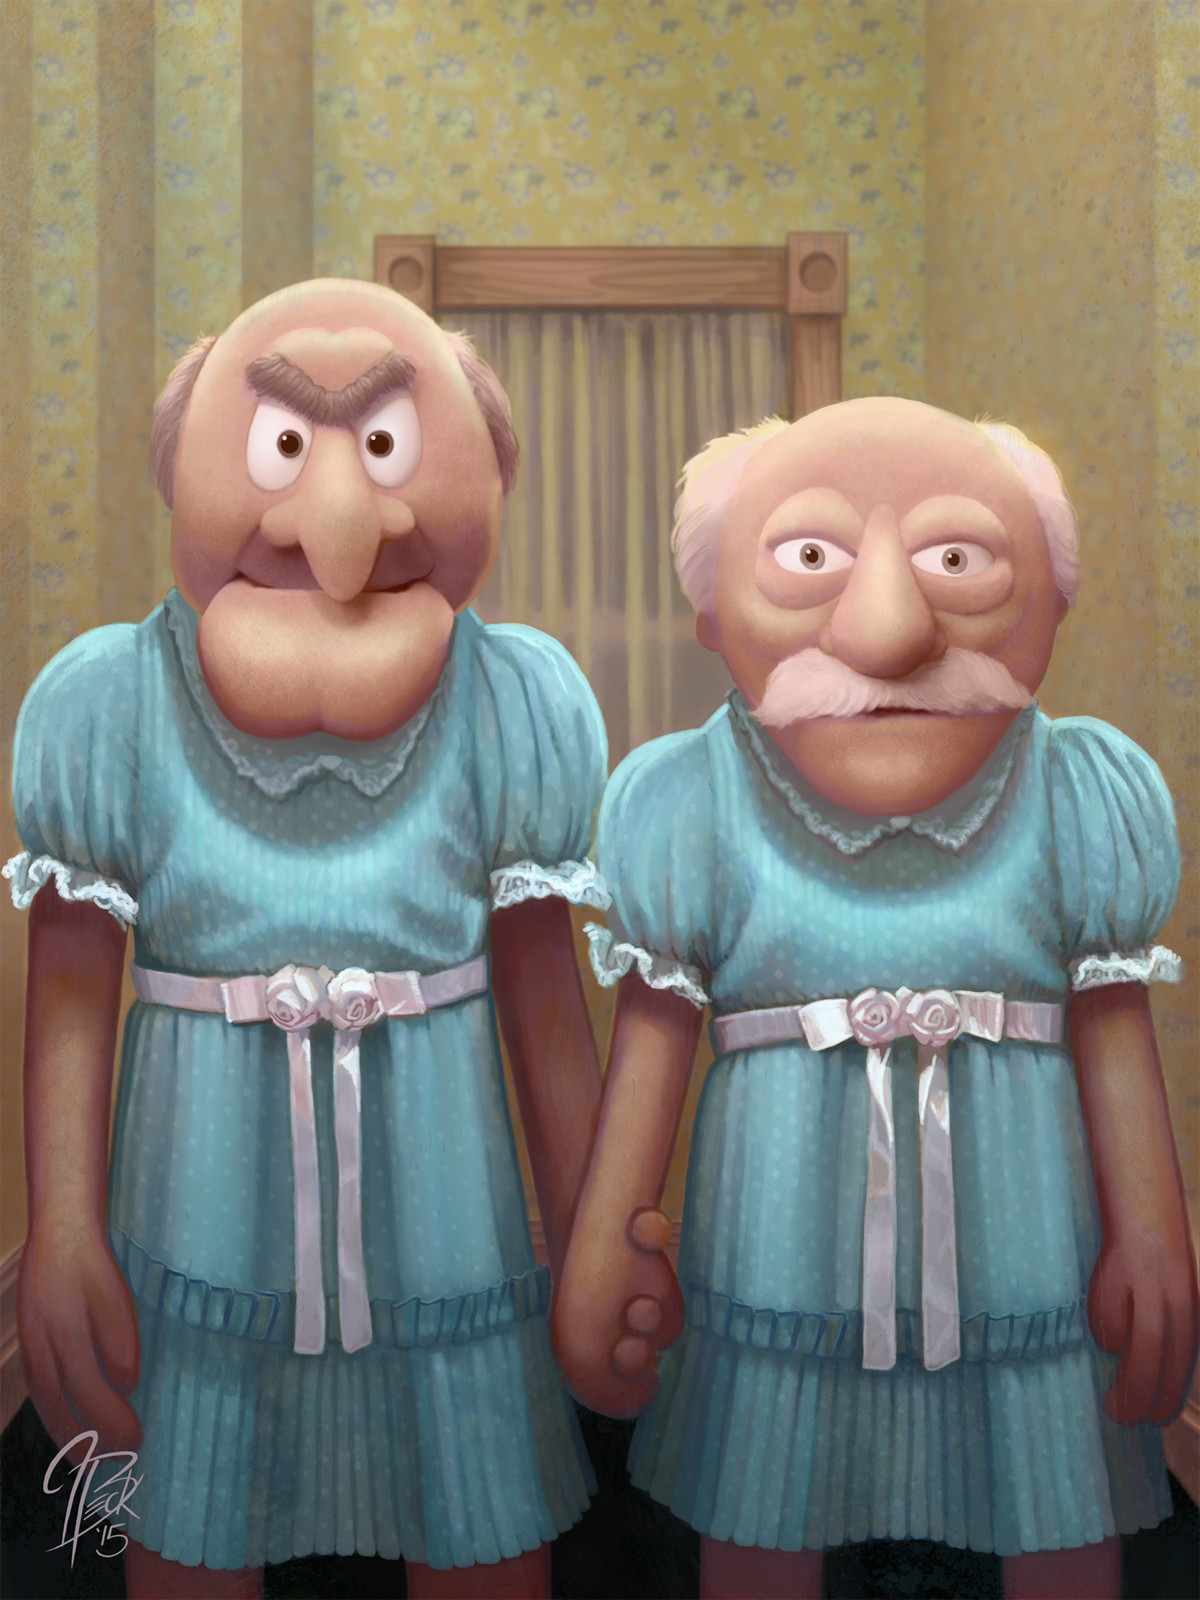 Statler and Waldorf as The Grady Twins